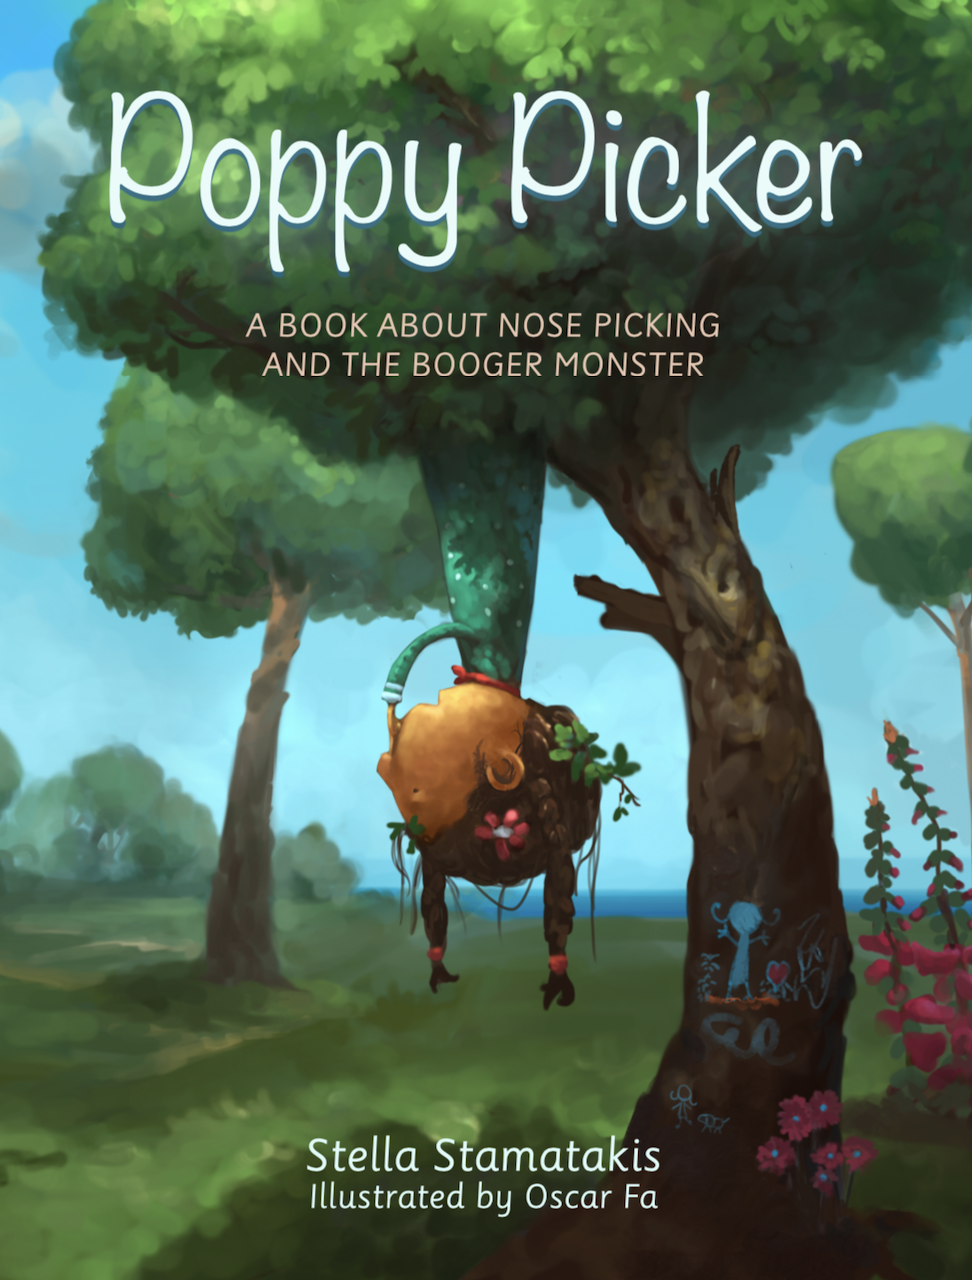 Image of Poppy Picker,  a book about nose picking and the Booger Monster. Paper back